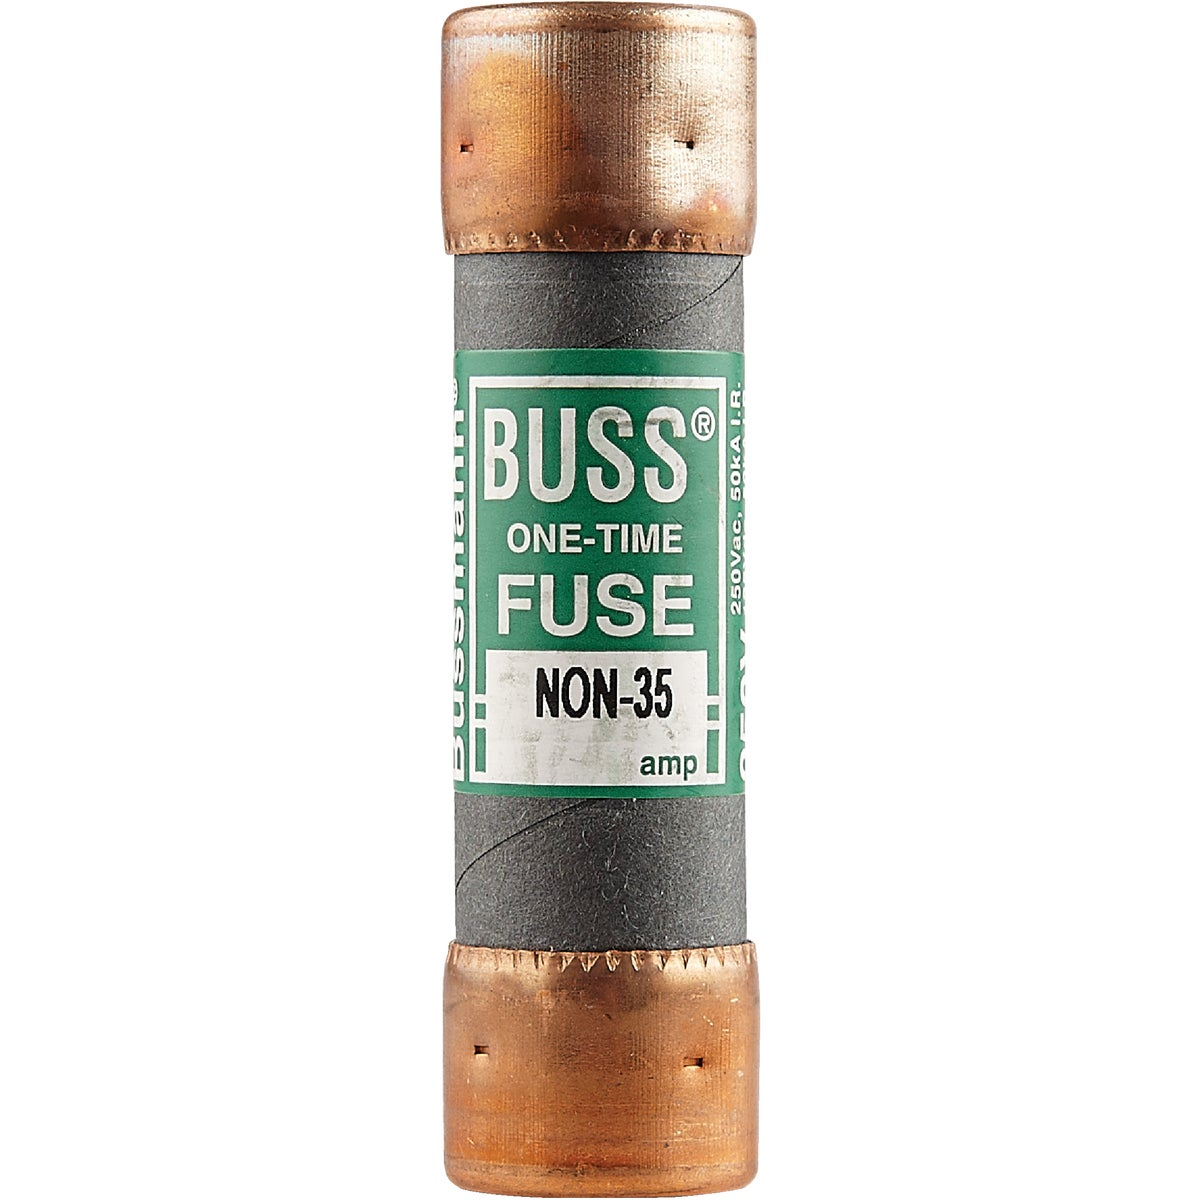 35A NON CARTRIDGE FUSE